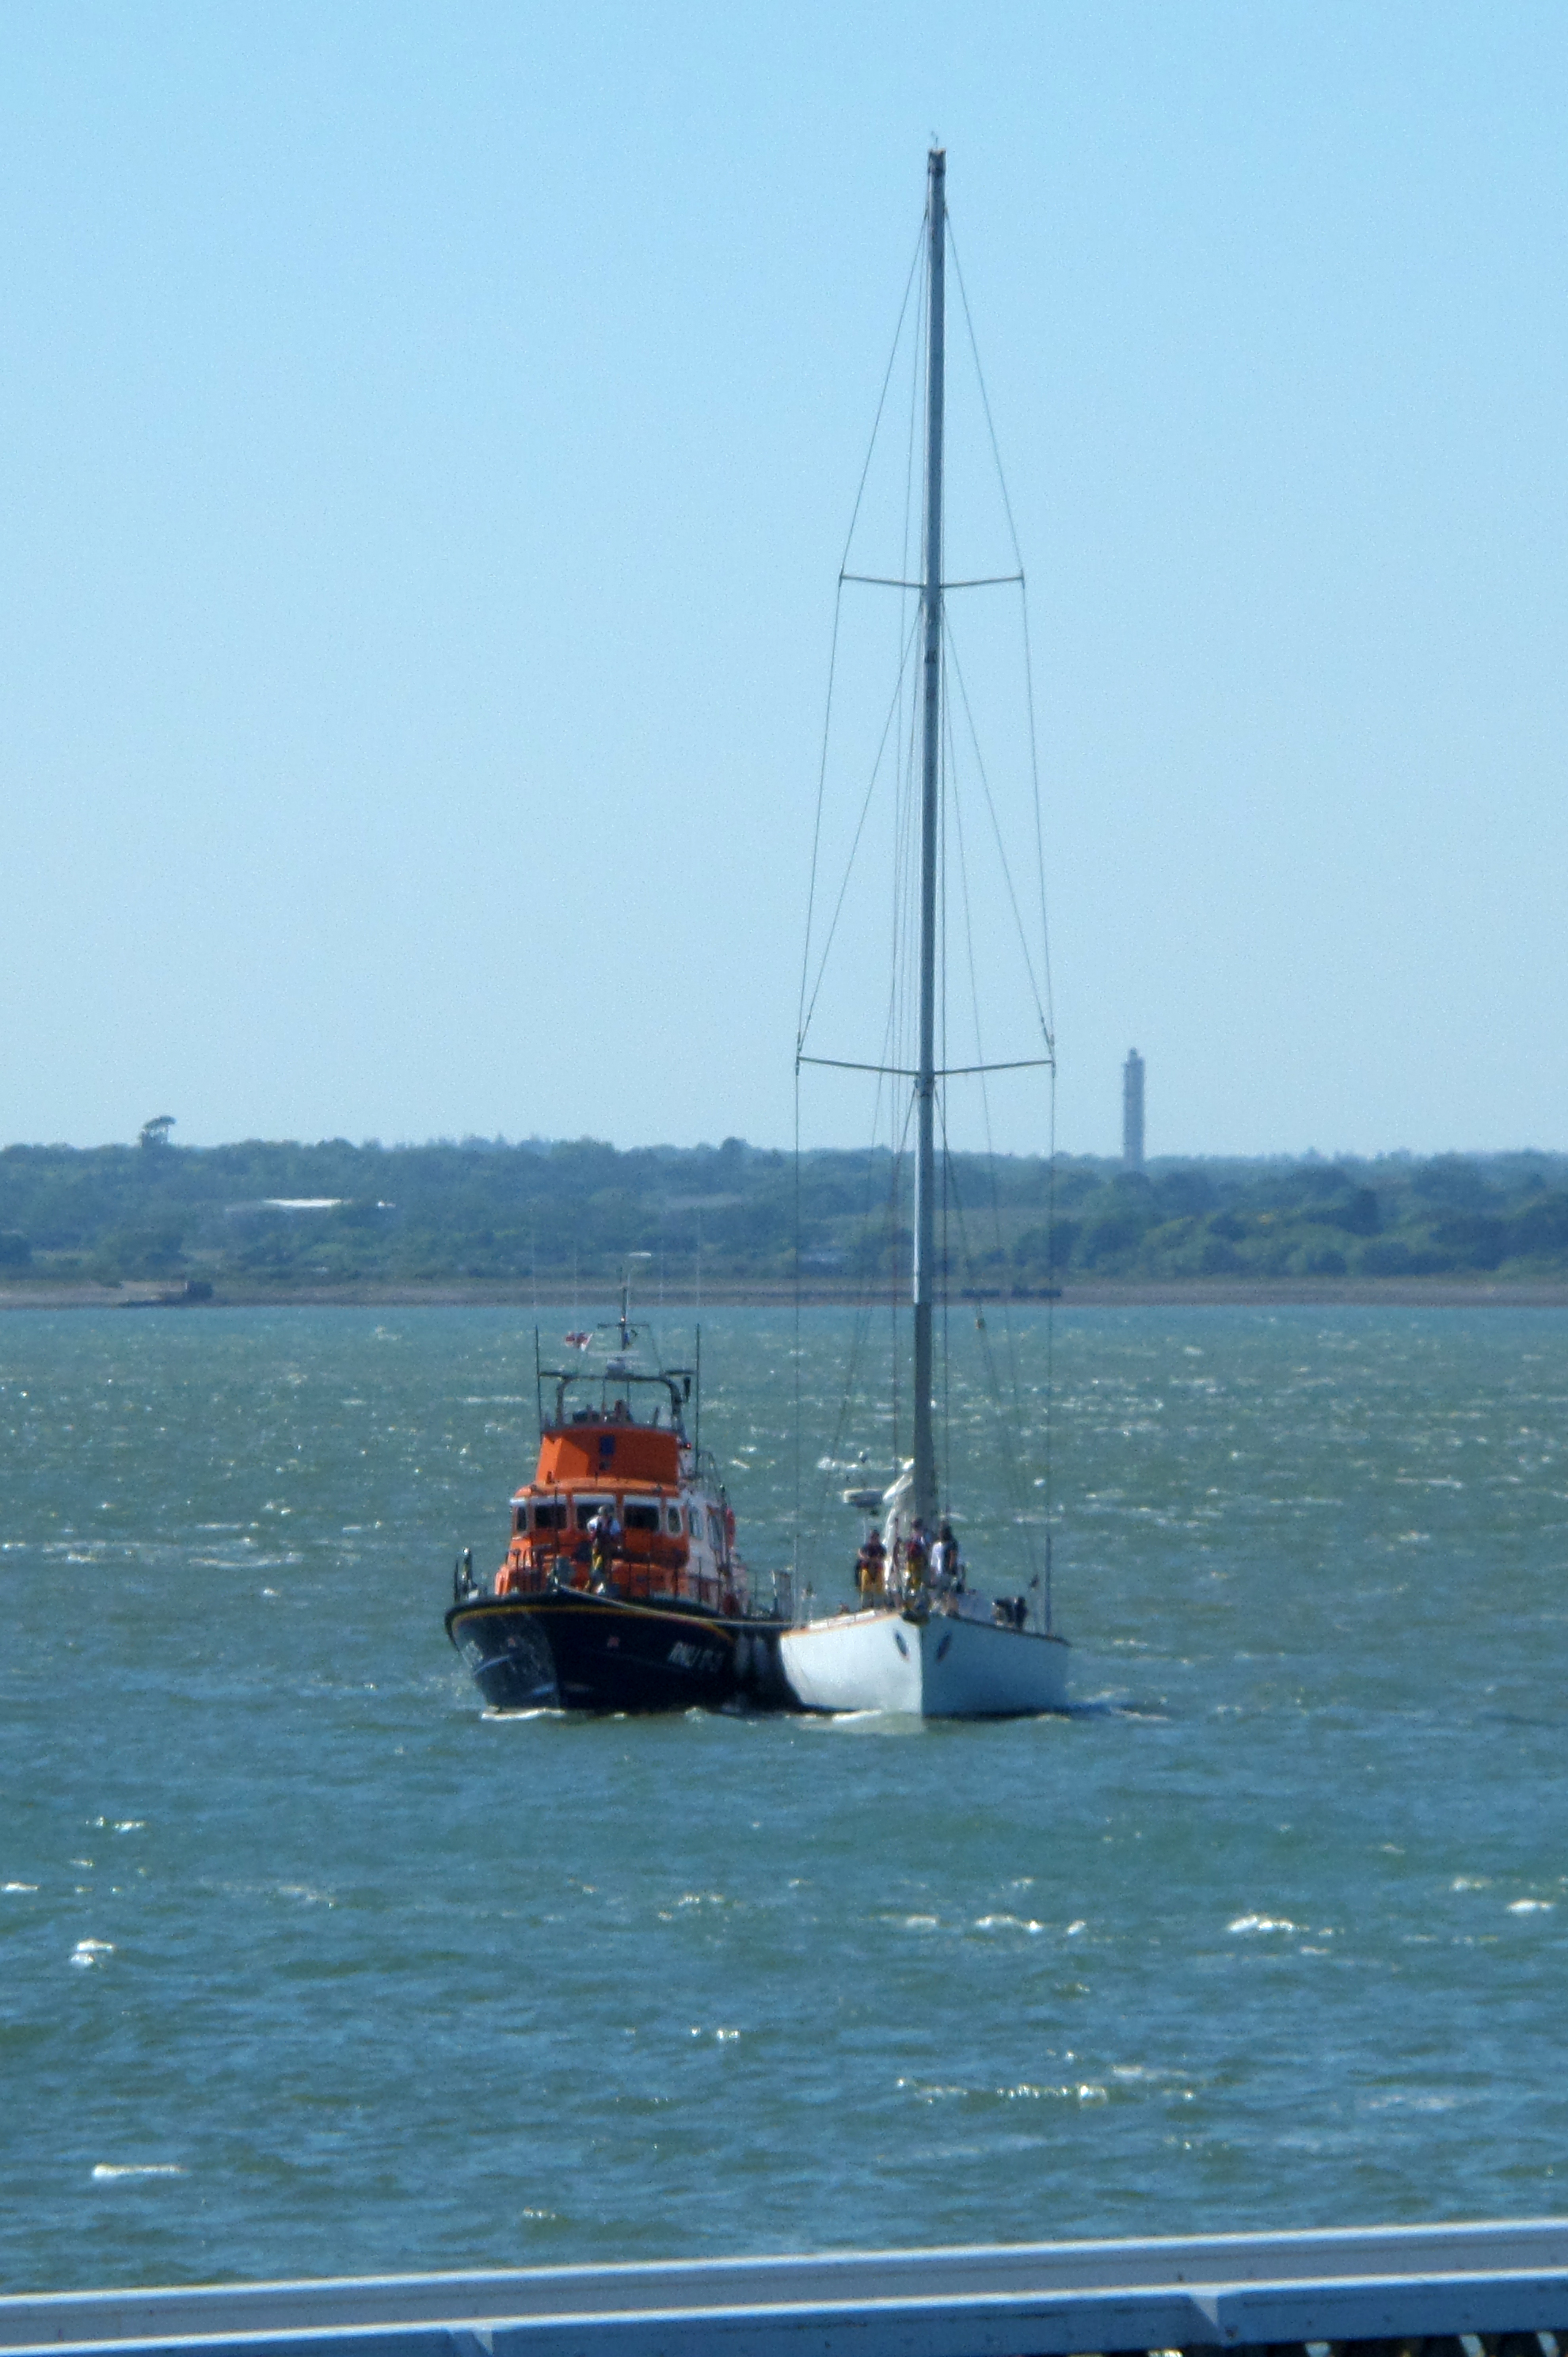 Yacht Great Britain II under tow by the RNLI Yarmouth lifeboat